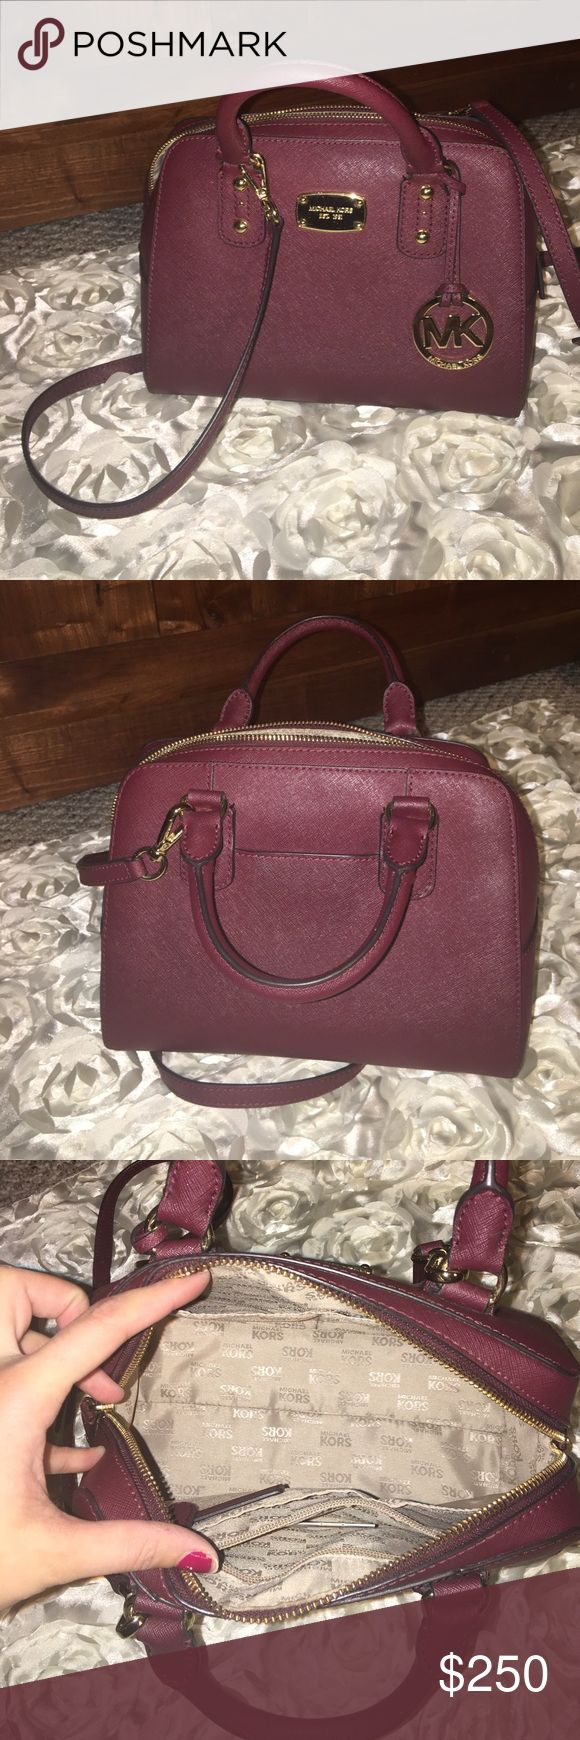 Michael Kors jet set crossbody purse Absolutely gorgeous plum color. Saffiano leather MK. Size small (not mini) - very spacious. Comes with shoulder strap. Golden hardware. Michael Kors Bags